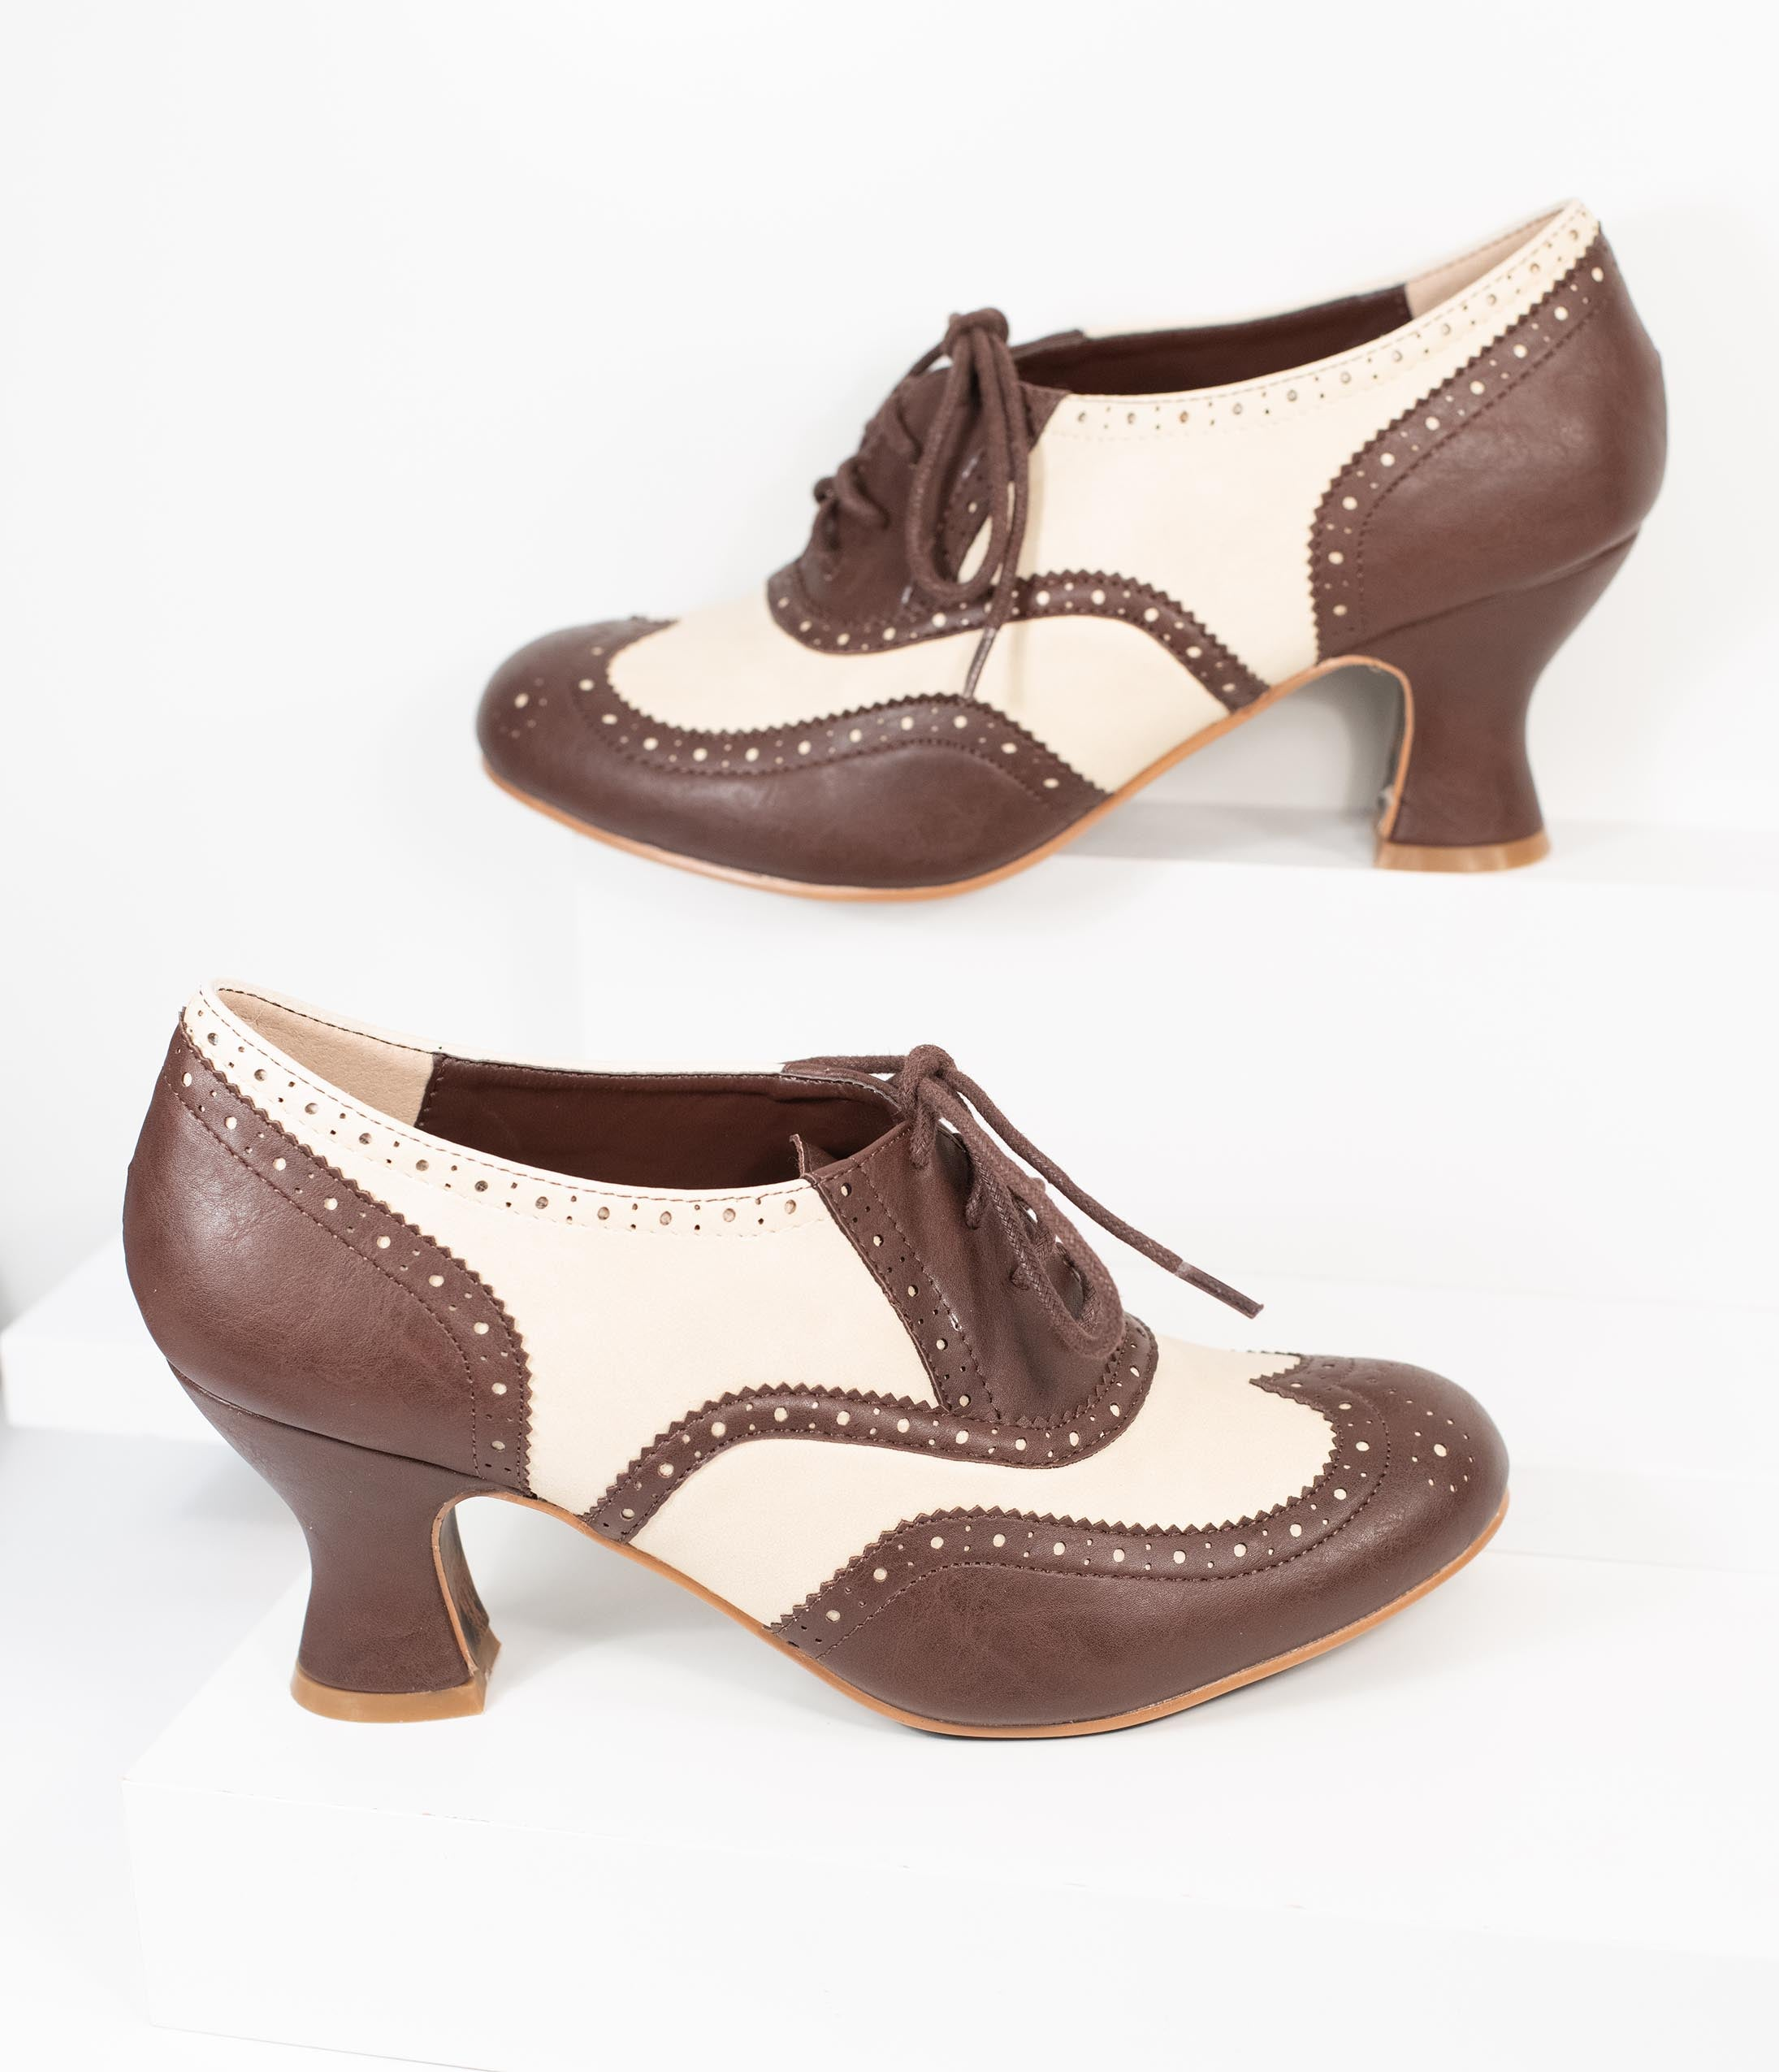 Vintage Heels, Retro Heels, Pumps, Shoes Bettie Page Brown  Ivory Leatherette Patricia Oxford Heels $82.00 AT vintagedancer.com